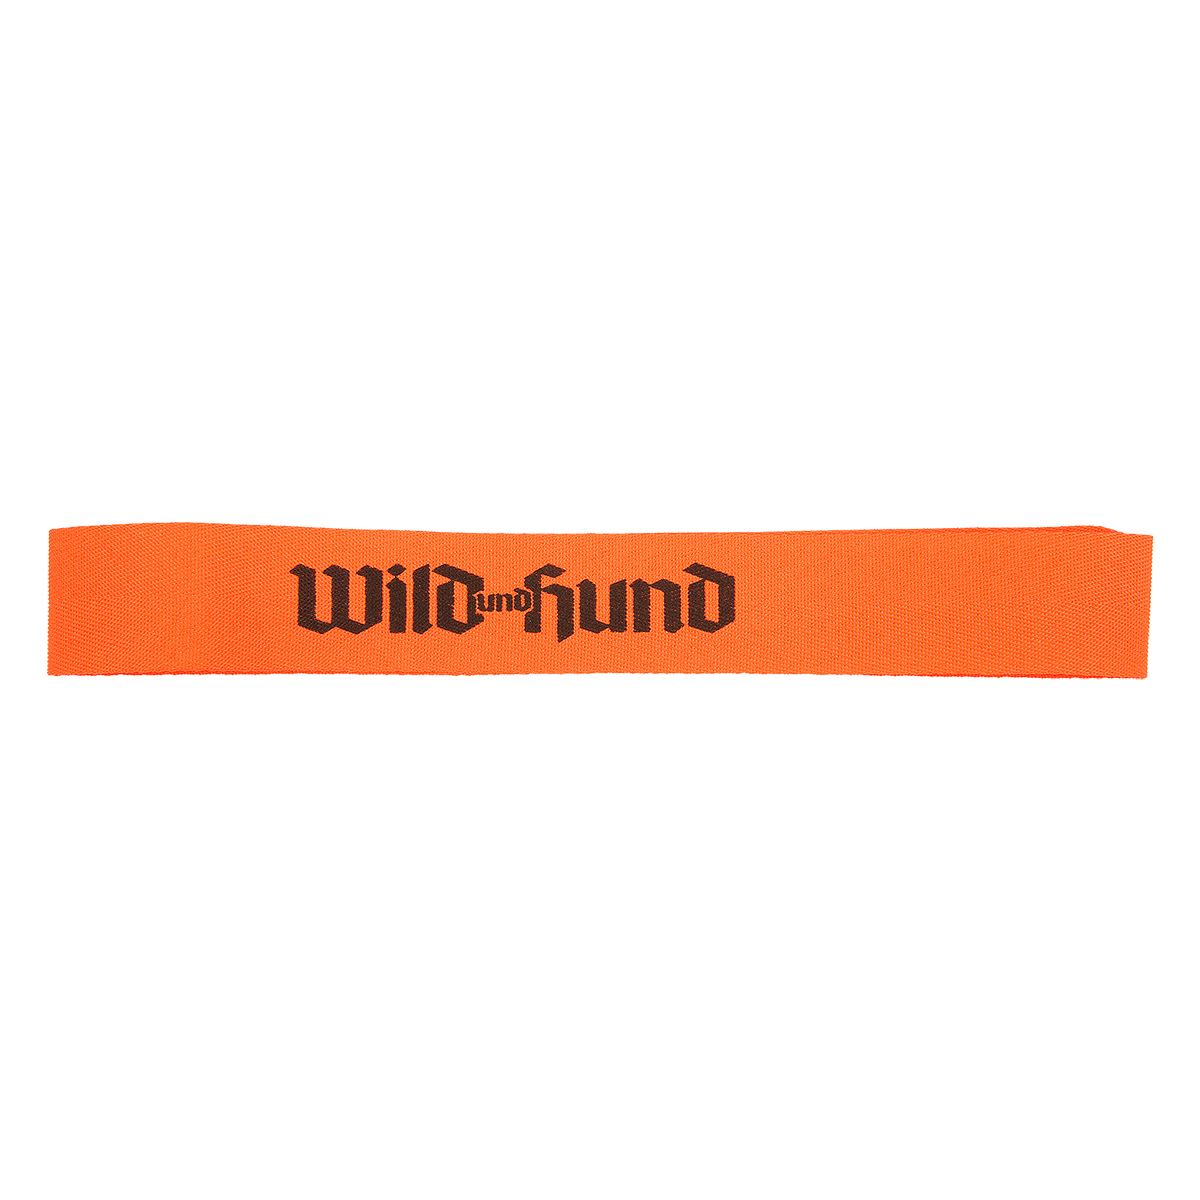 WILD UND HUND Edition: Hutband orange im Pareyshop